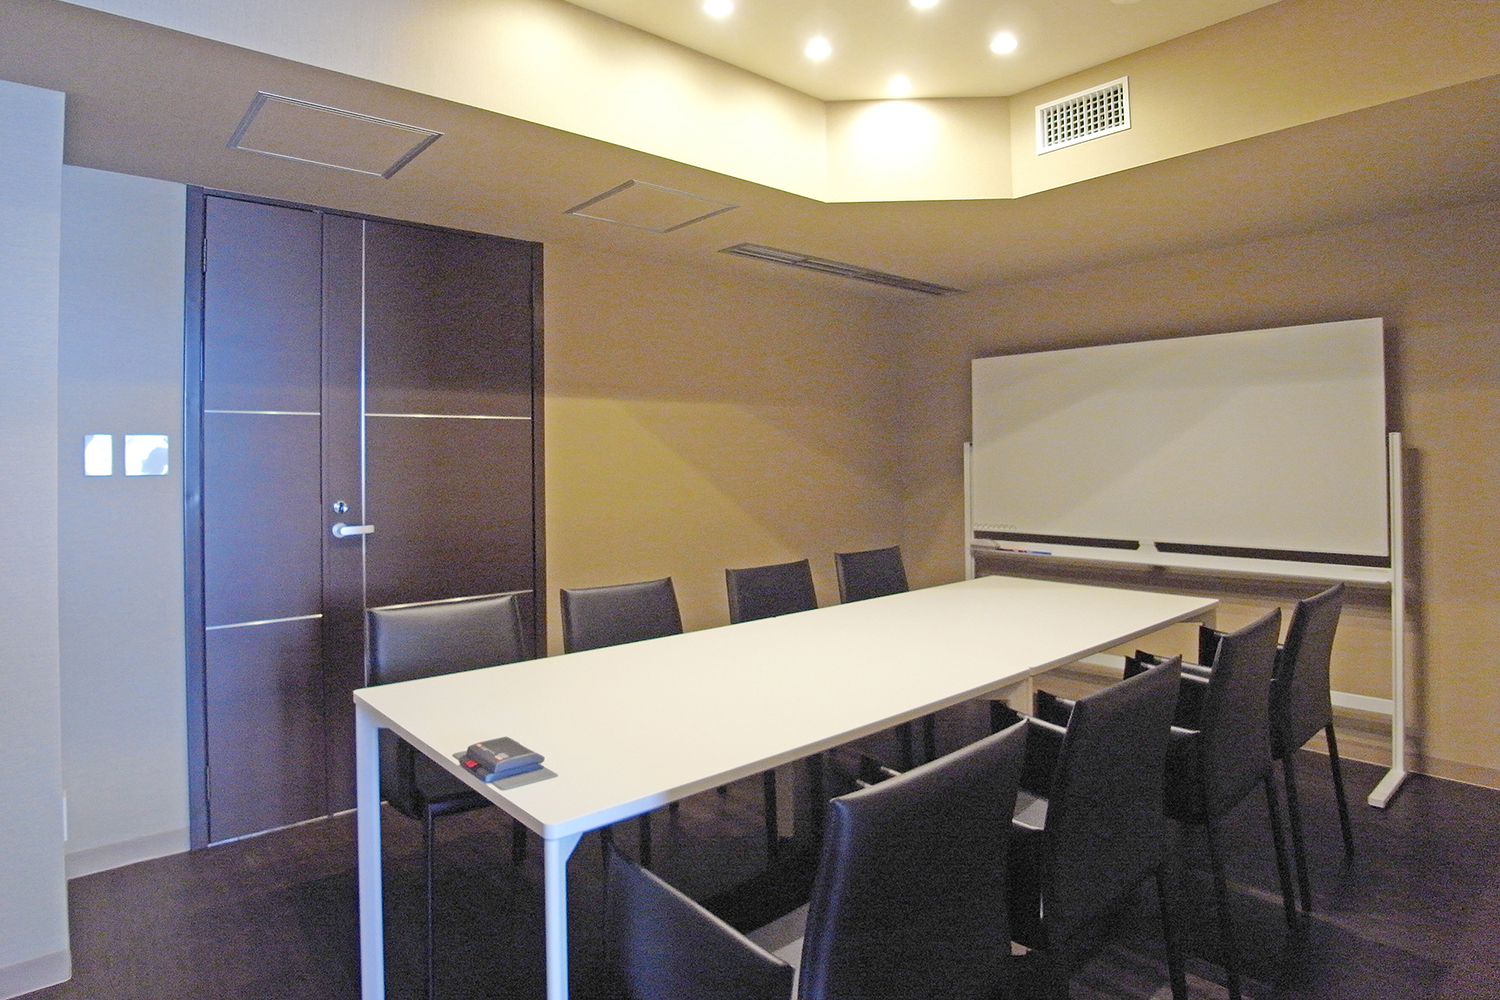 Meeting Room A /8名用